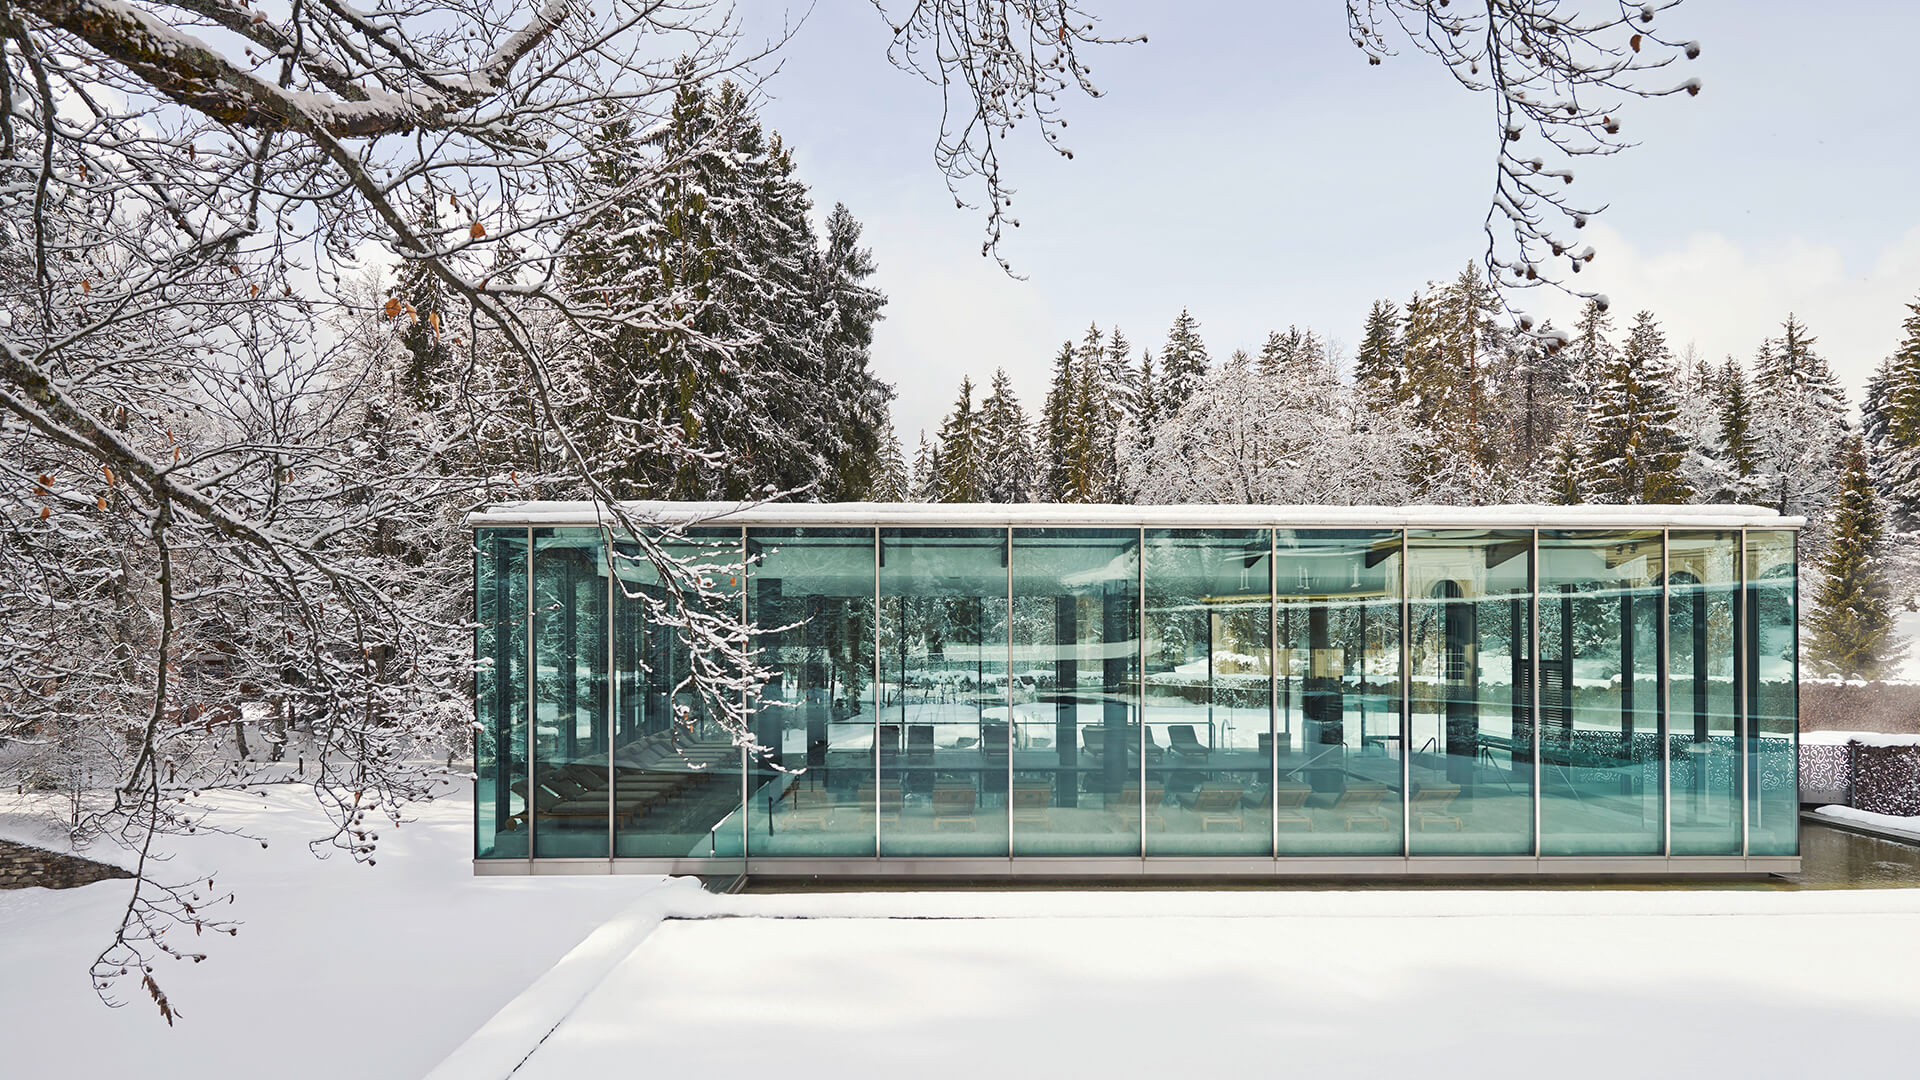 beautiful winter scene of the Waldhaus Spa glass building, white snow on the ground and surrounding trees, clear blue sky in the background